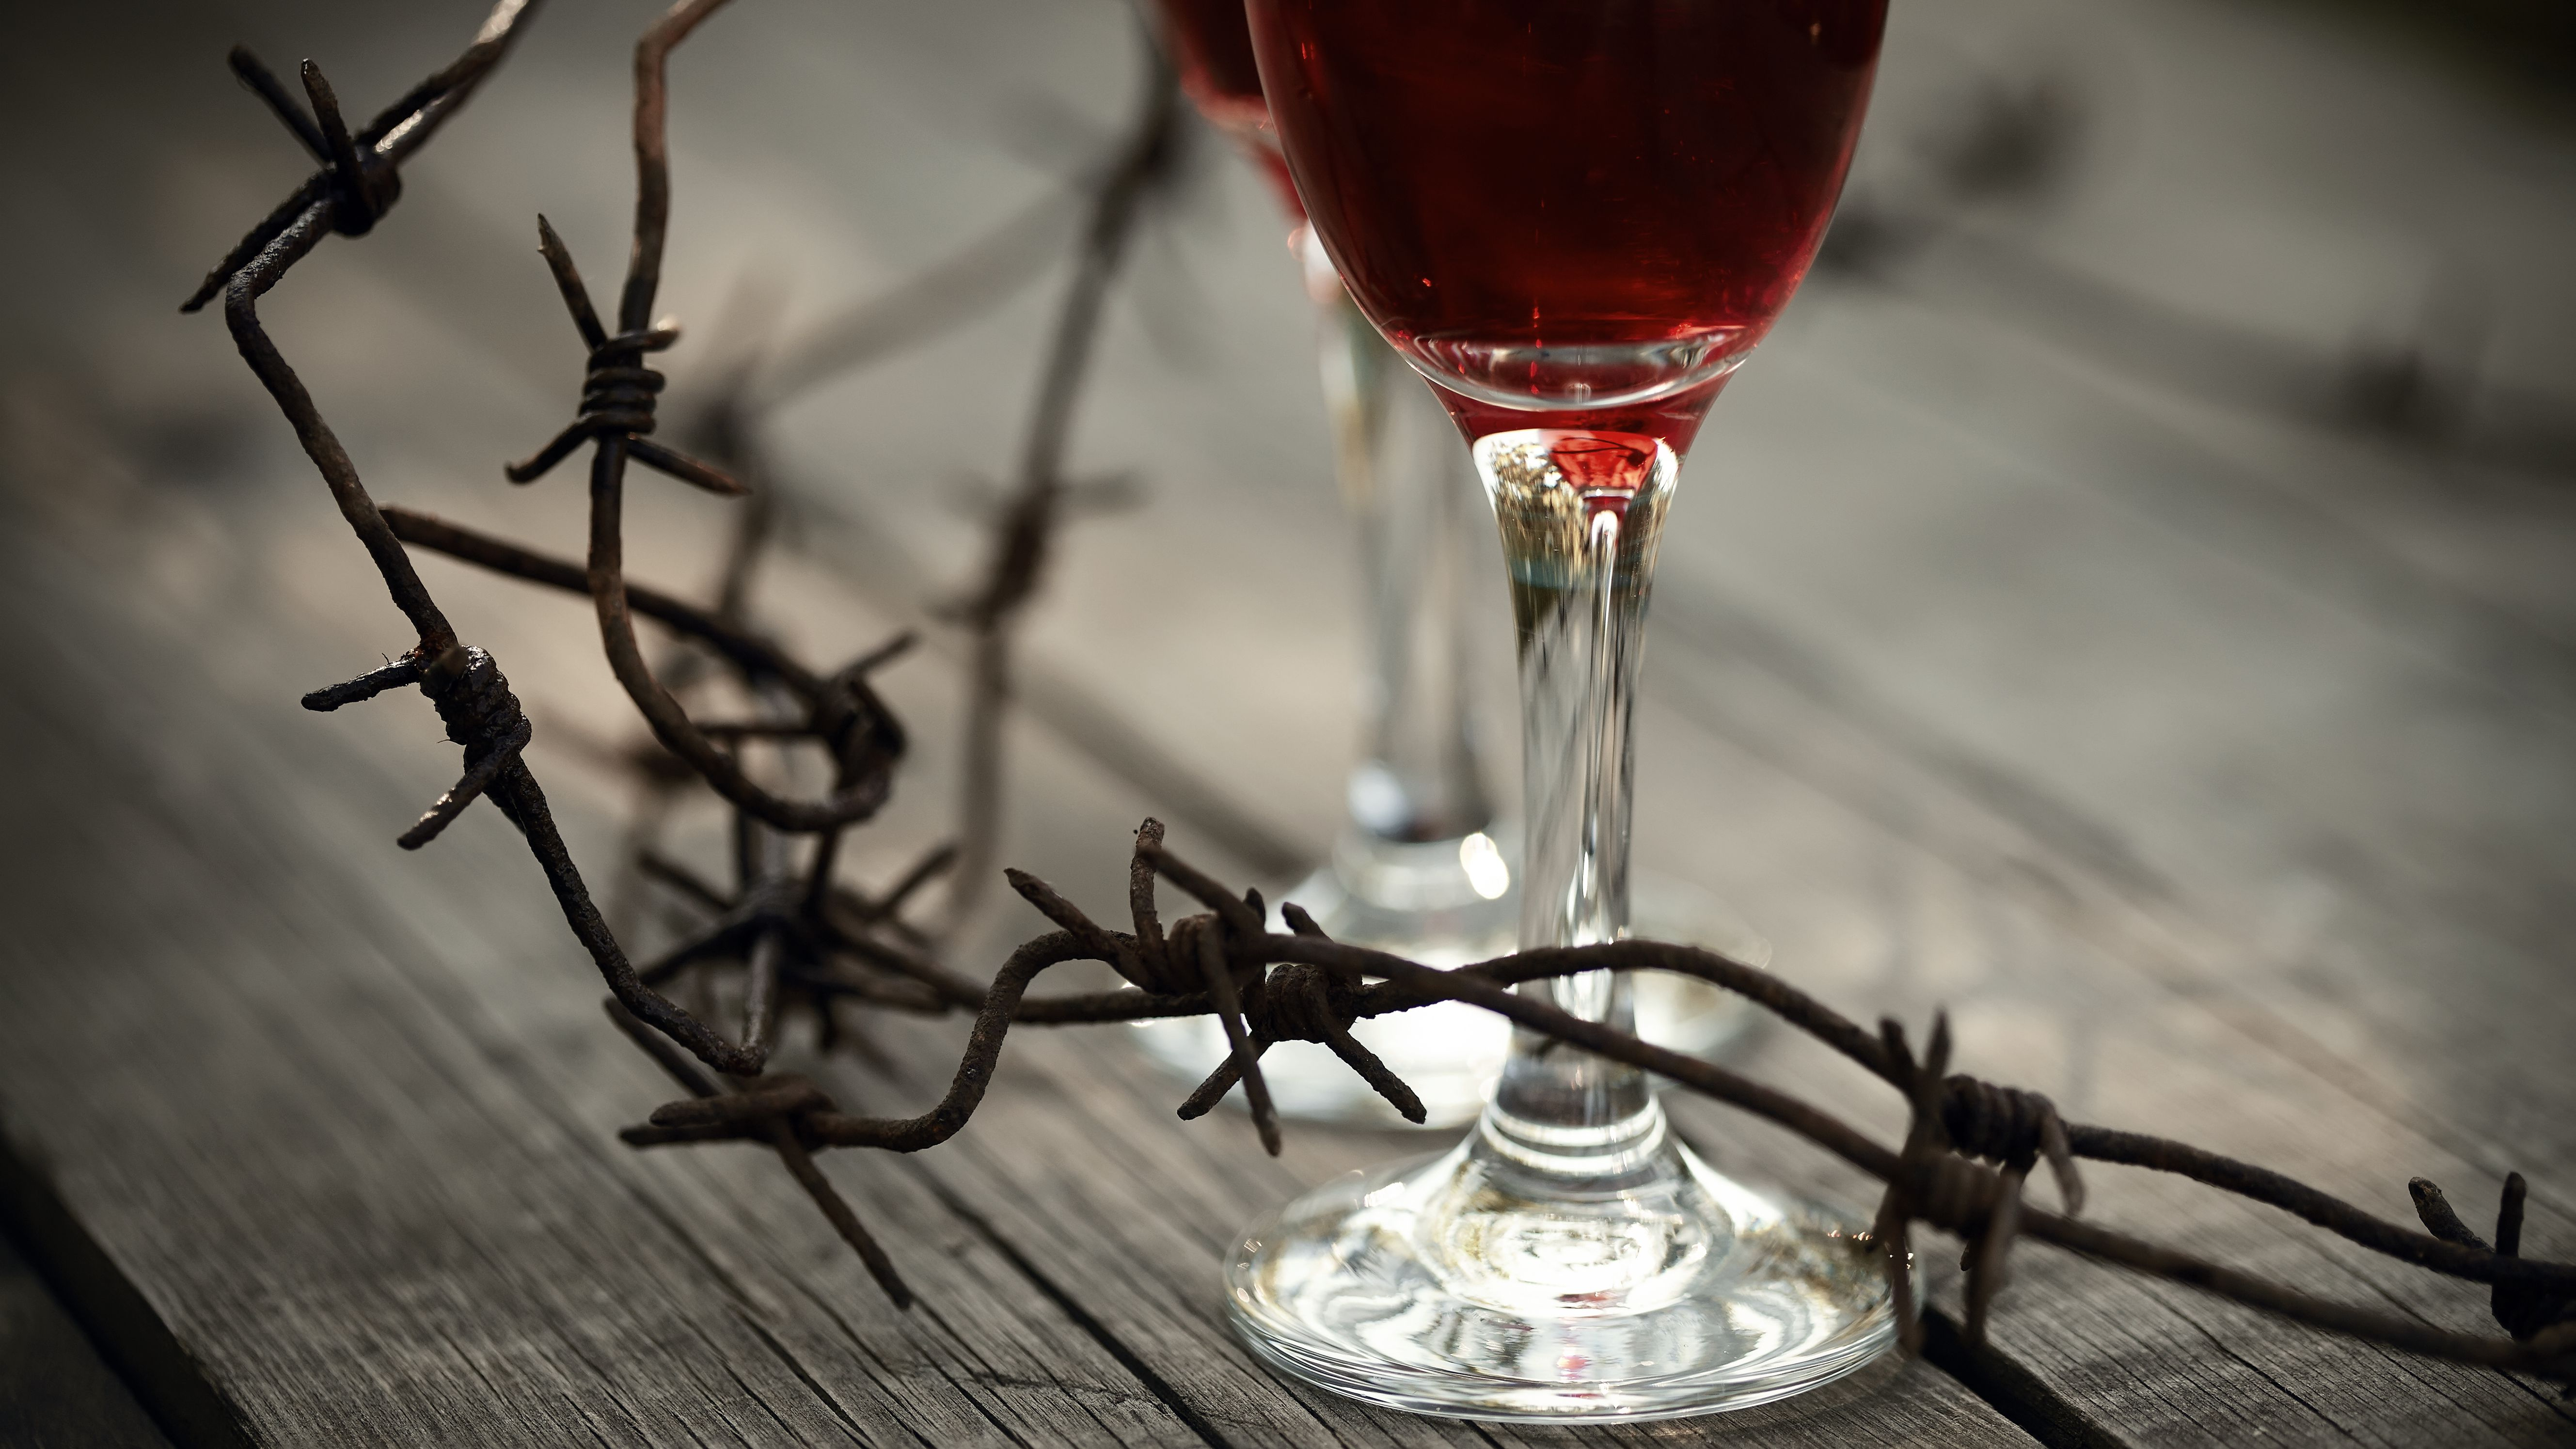 Understanding Islam's Stance on Alcohol